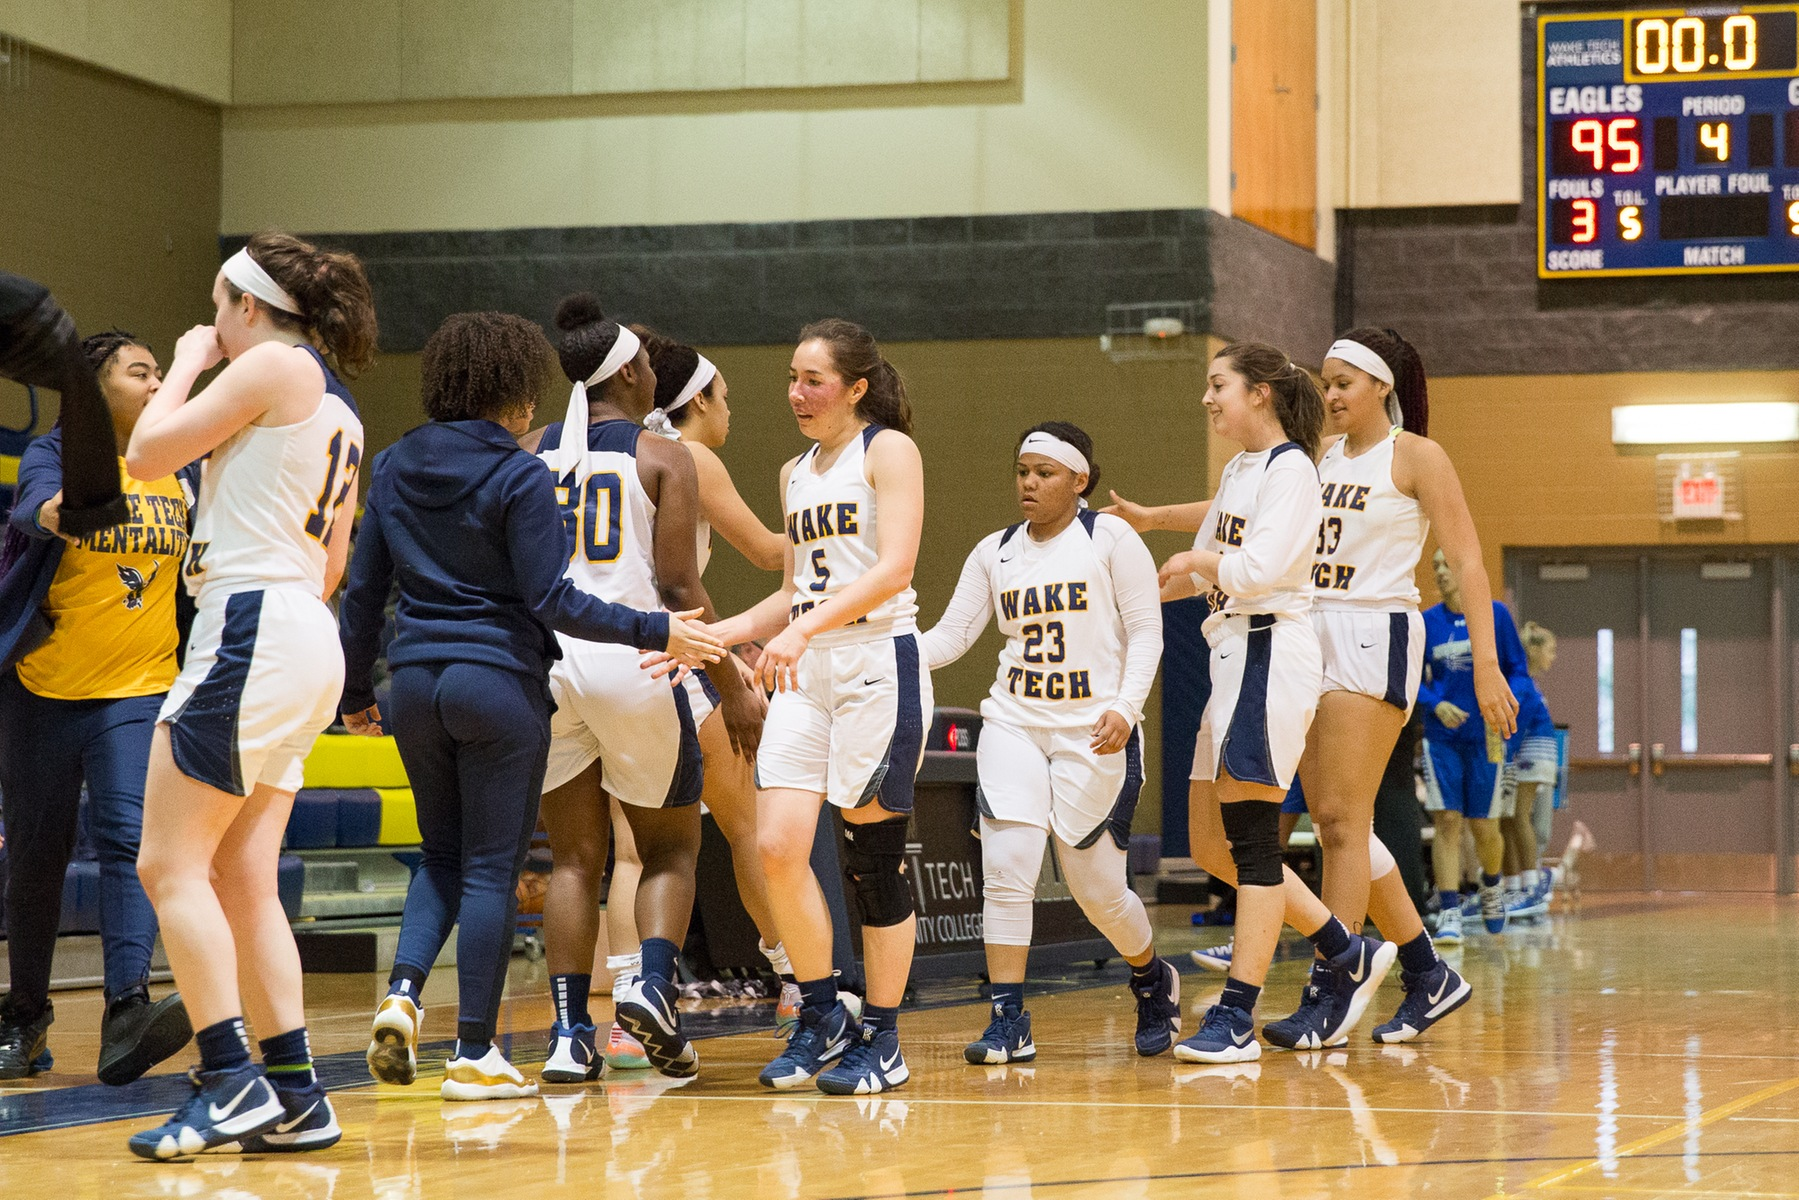 WBB: Eagles Cruise to Victory